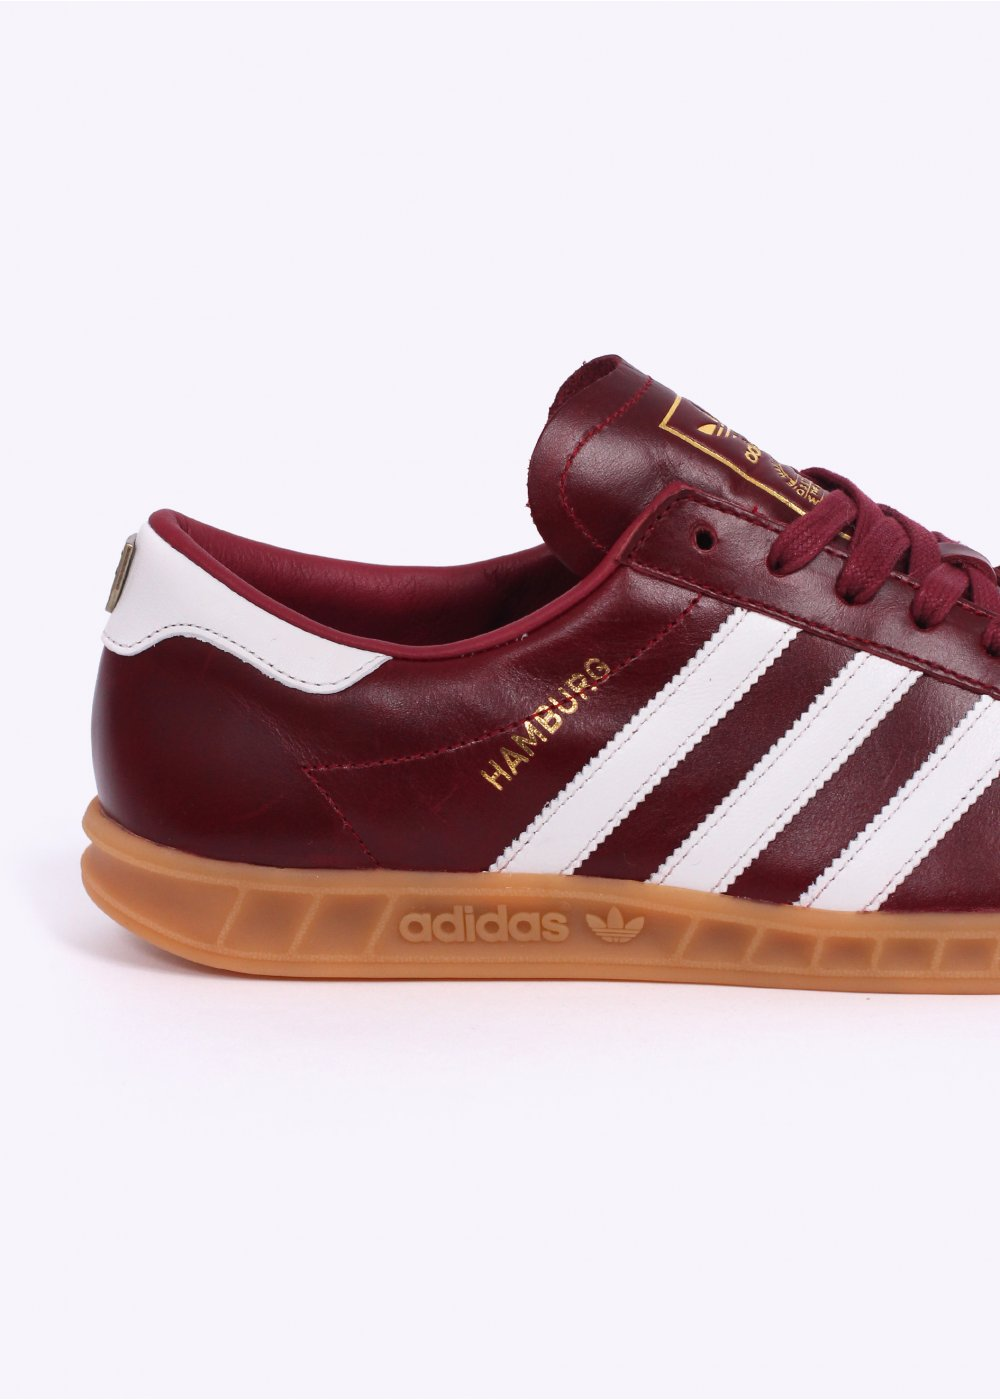 adidas originals footwear hamburg 39 made in germany 39 trainers collegiate burgundy white. Black Bedroom Furniture Sets. Home Design Ideas